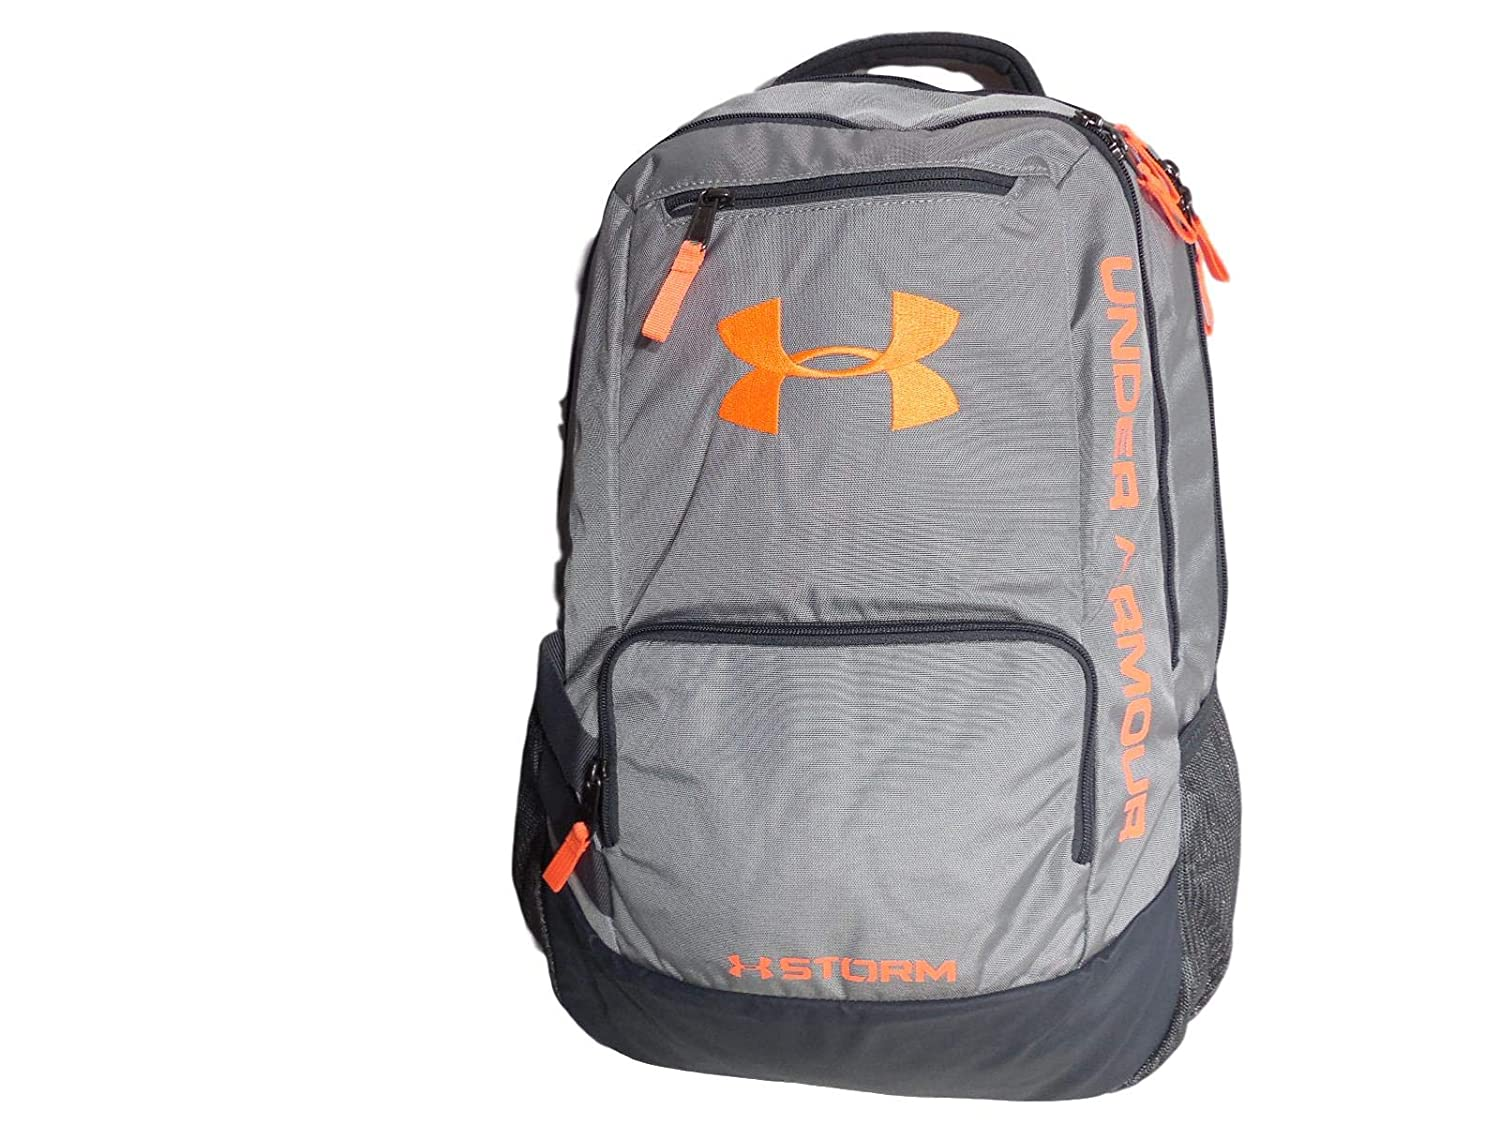 Under Armour Unisex Hustle II 15 Gray/Orange Laptop Backpack Student Bag